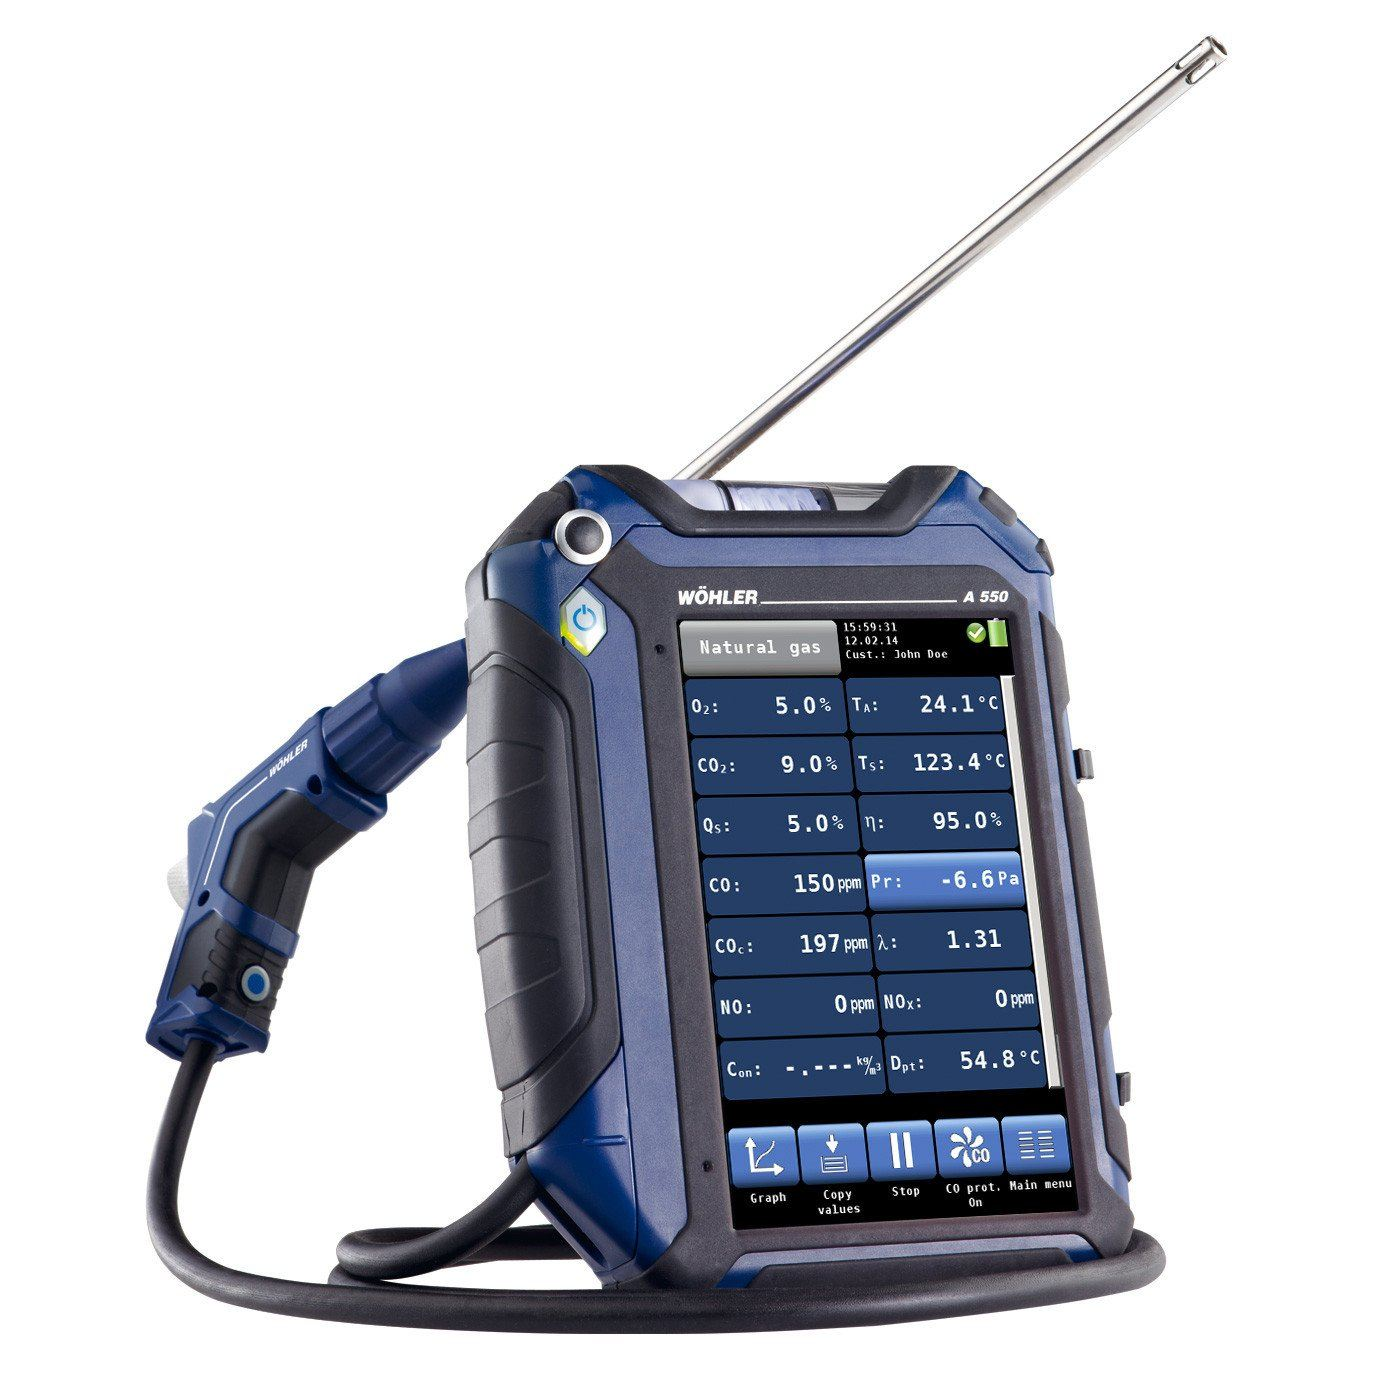 WOHLER A 550 L FLUE GAS ANALYZER STANDARD SET